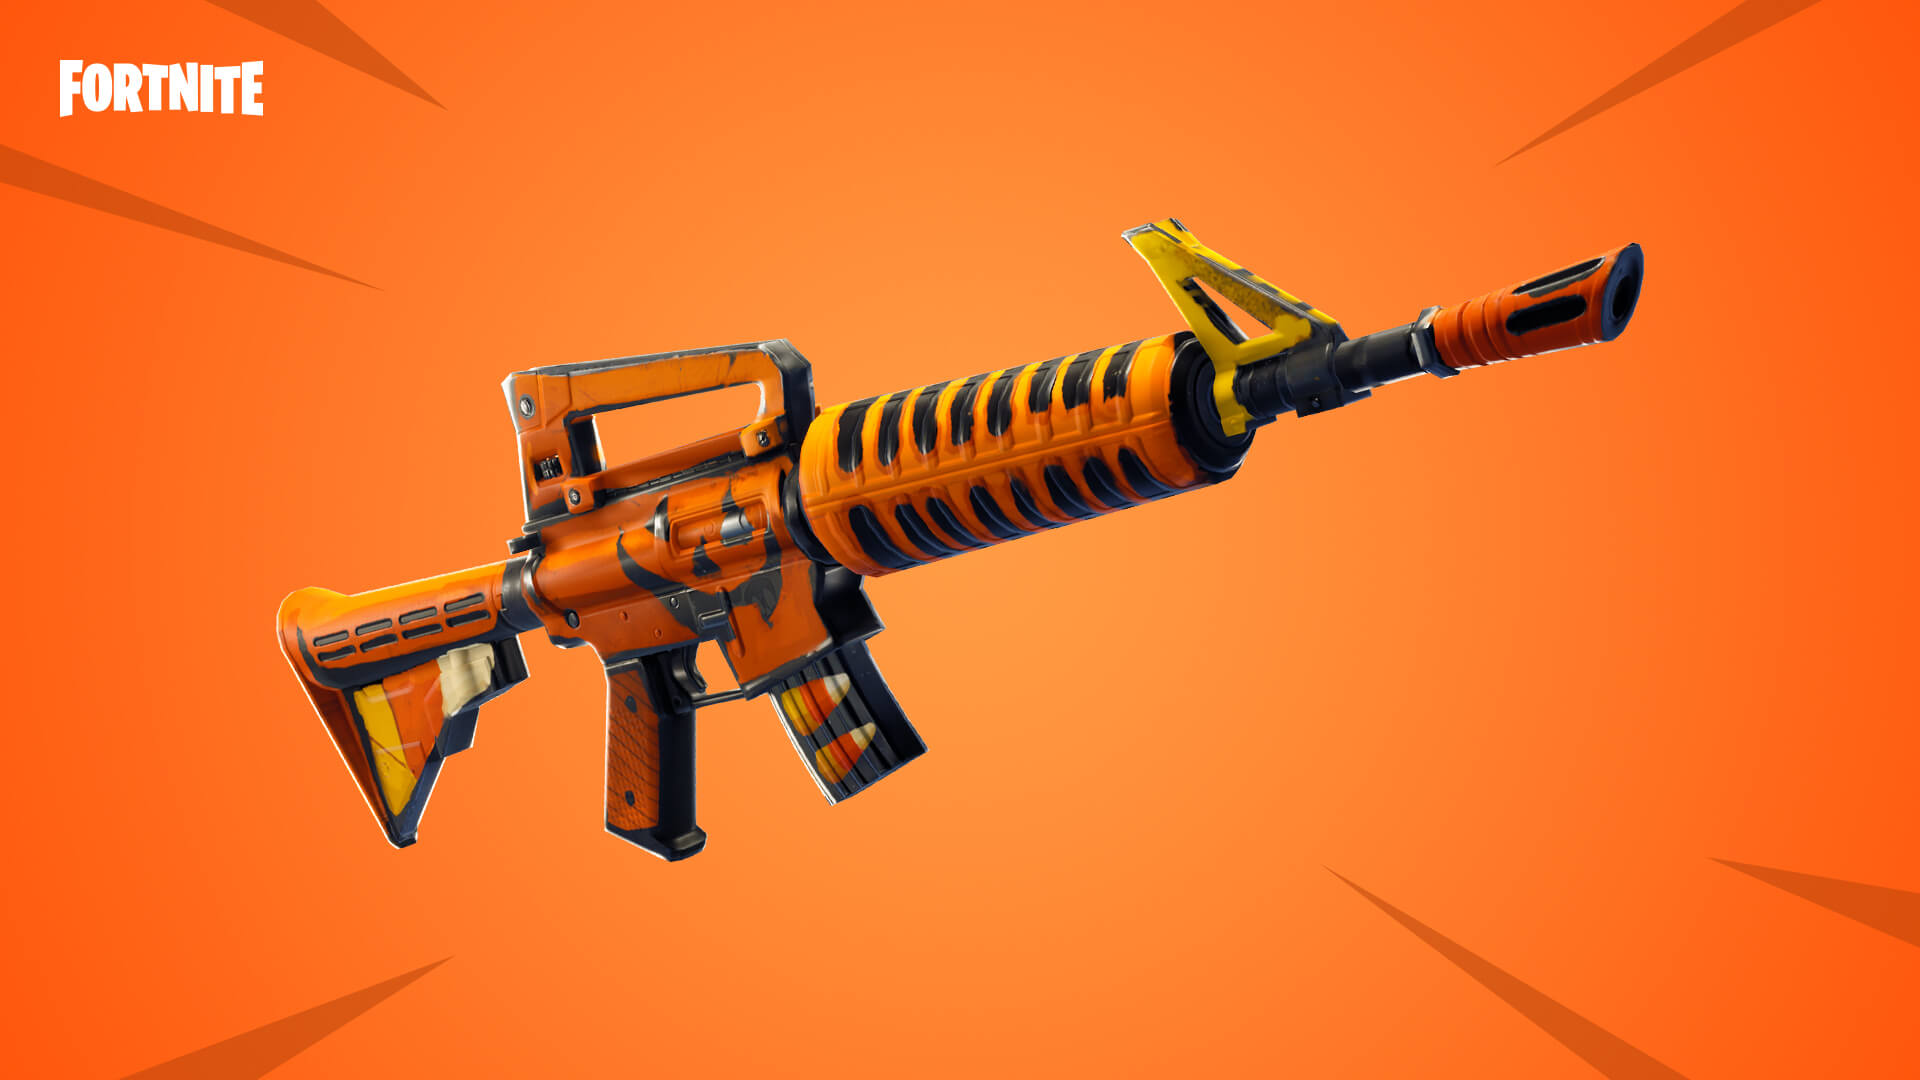 Fortnite Save the World Grave Digger Assault Rifle